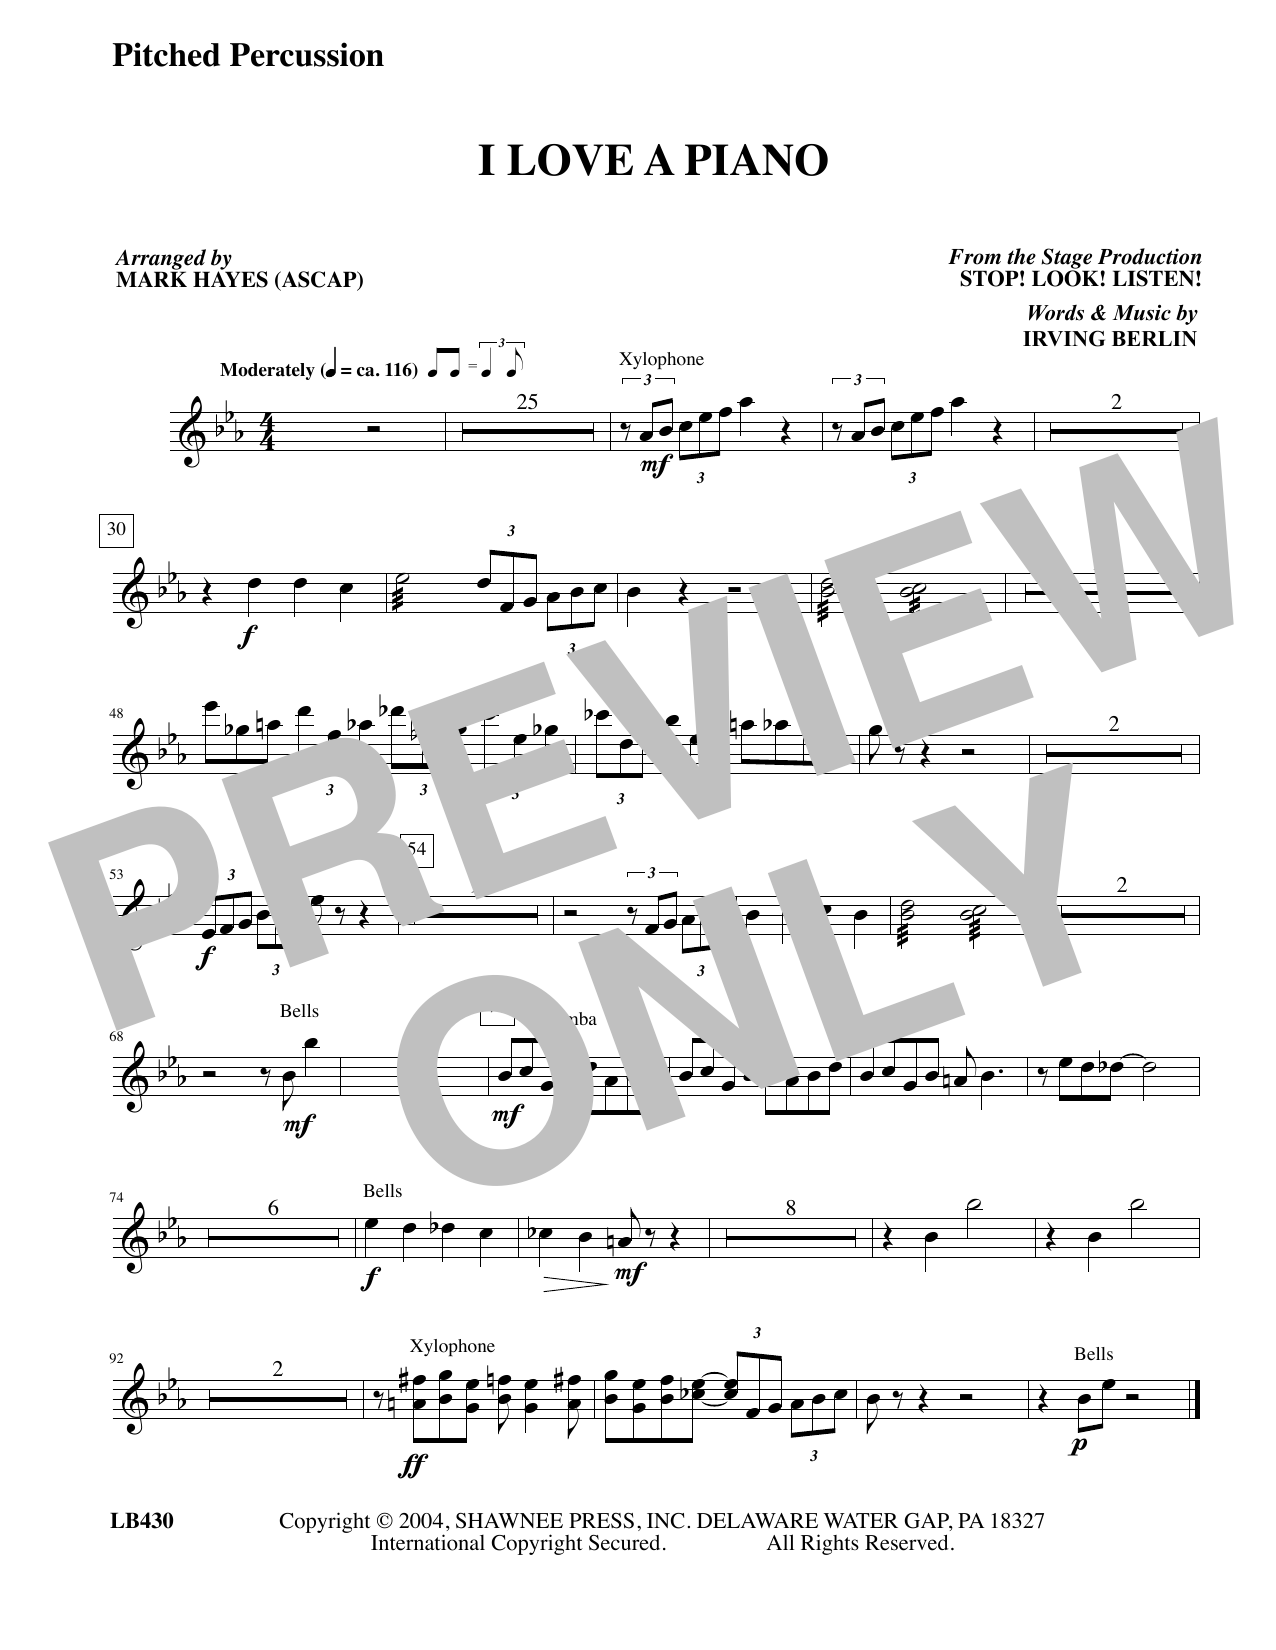 I Love a Piano (arr. Mark Hayes) - Pitched Percussion (Choir Instrumental Pak)